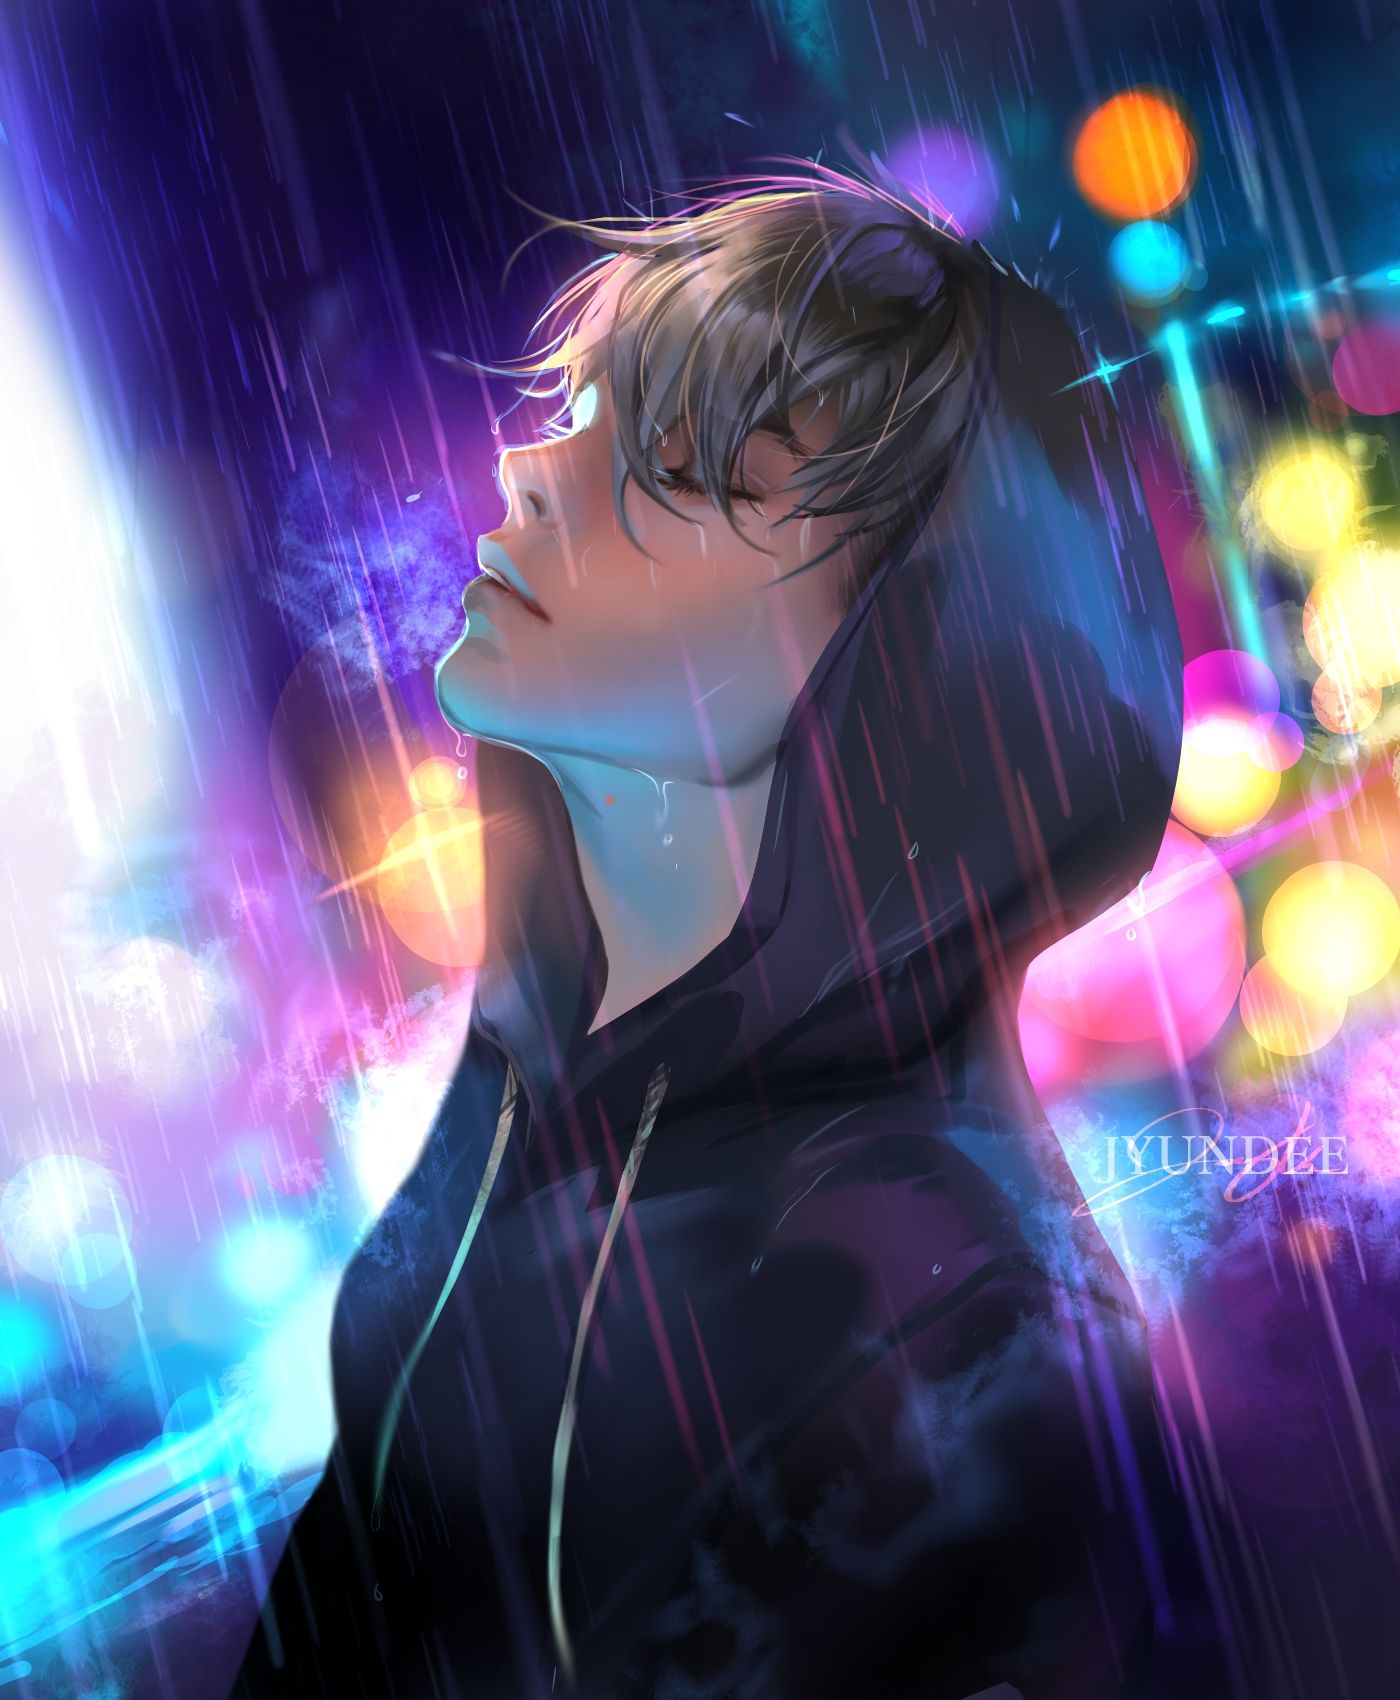 Pin By Elchico Del Fuego On Anime Anime Boy With Headphones Anime Awesome Anime